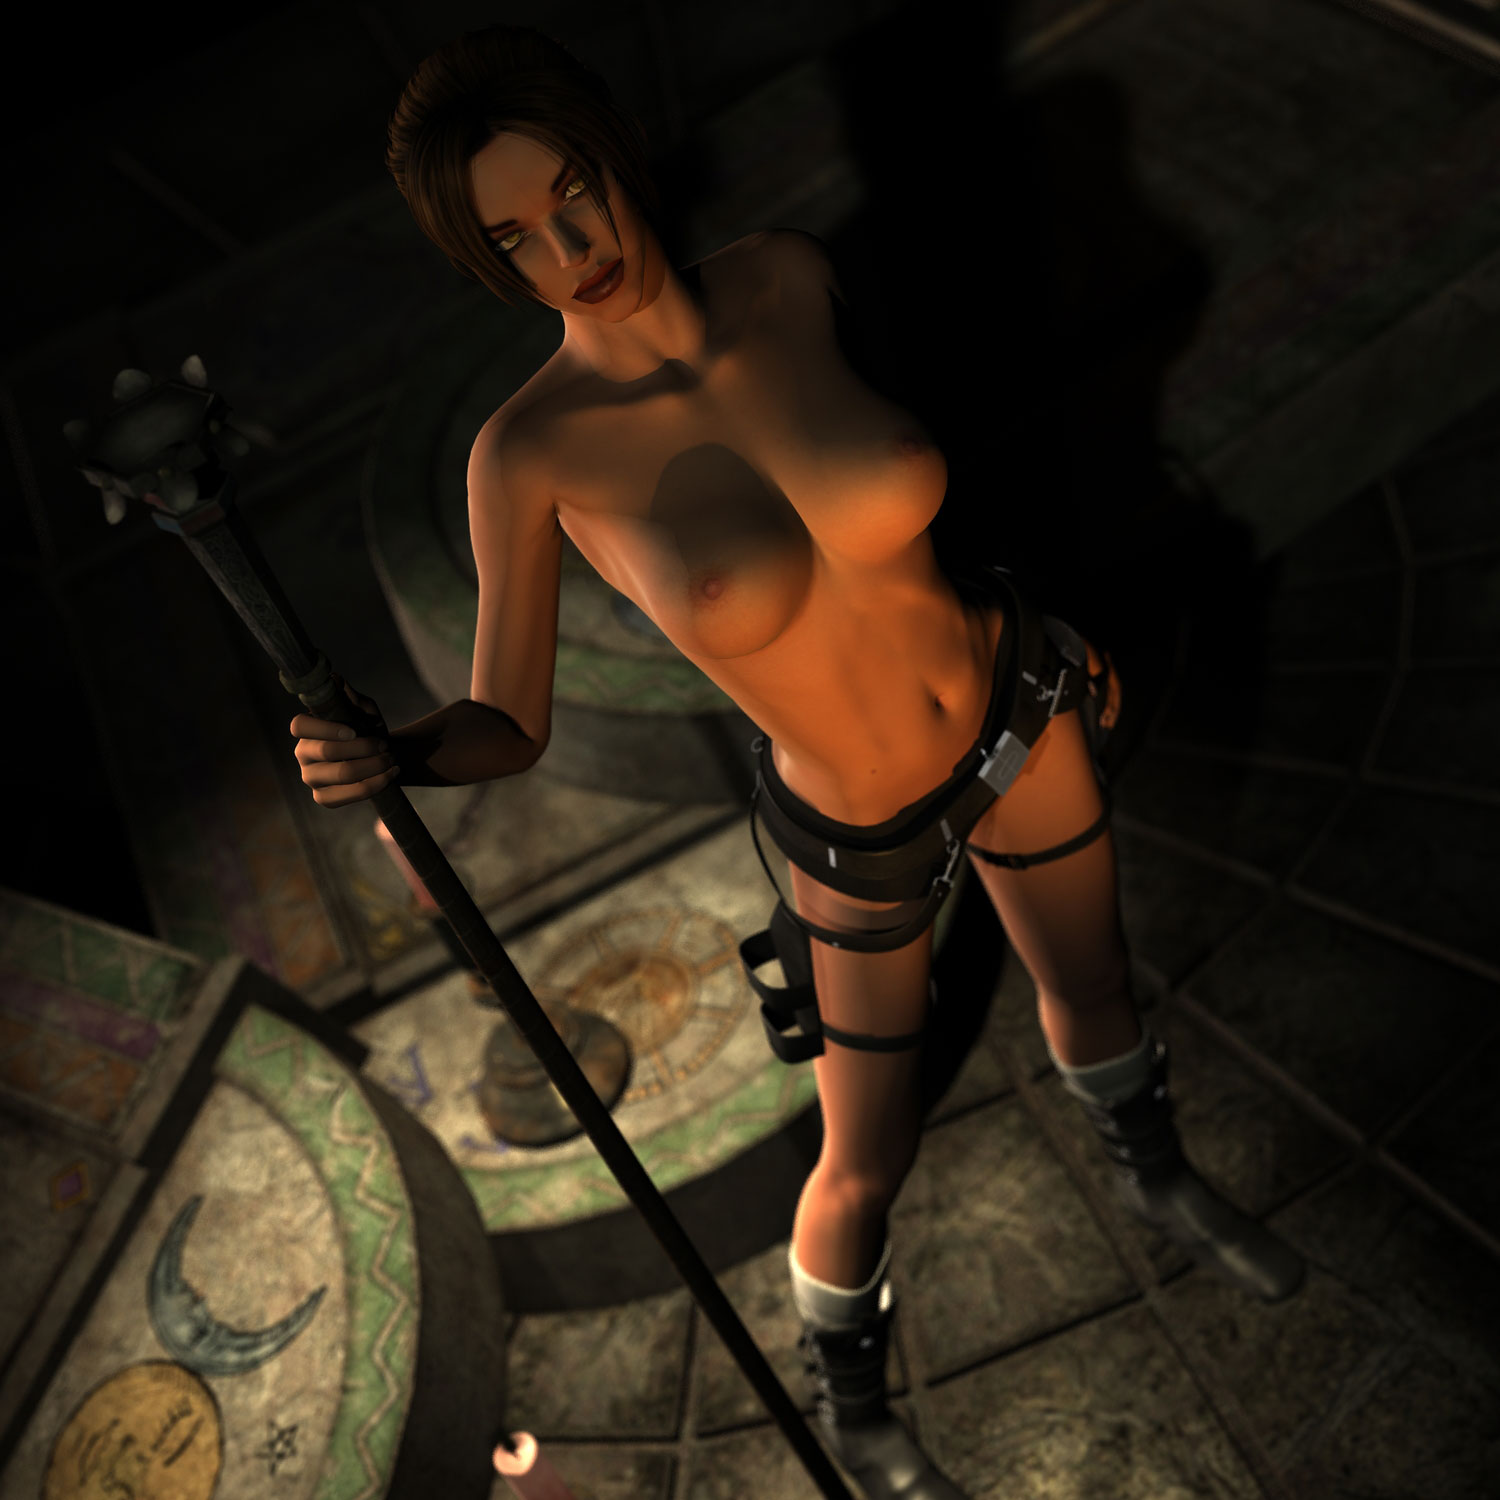 Lara crafts tits tomb raider sexy photos pornos pussy